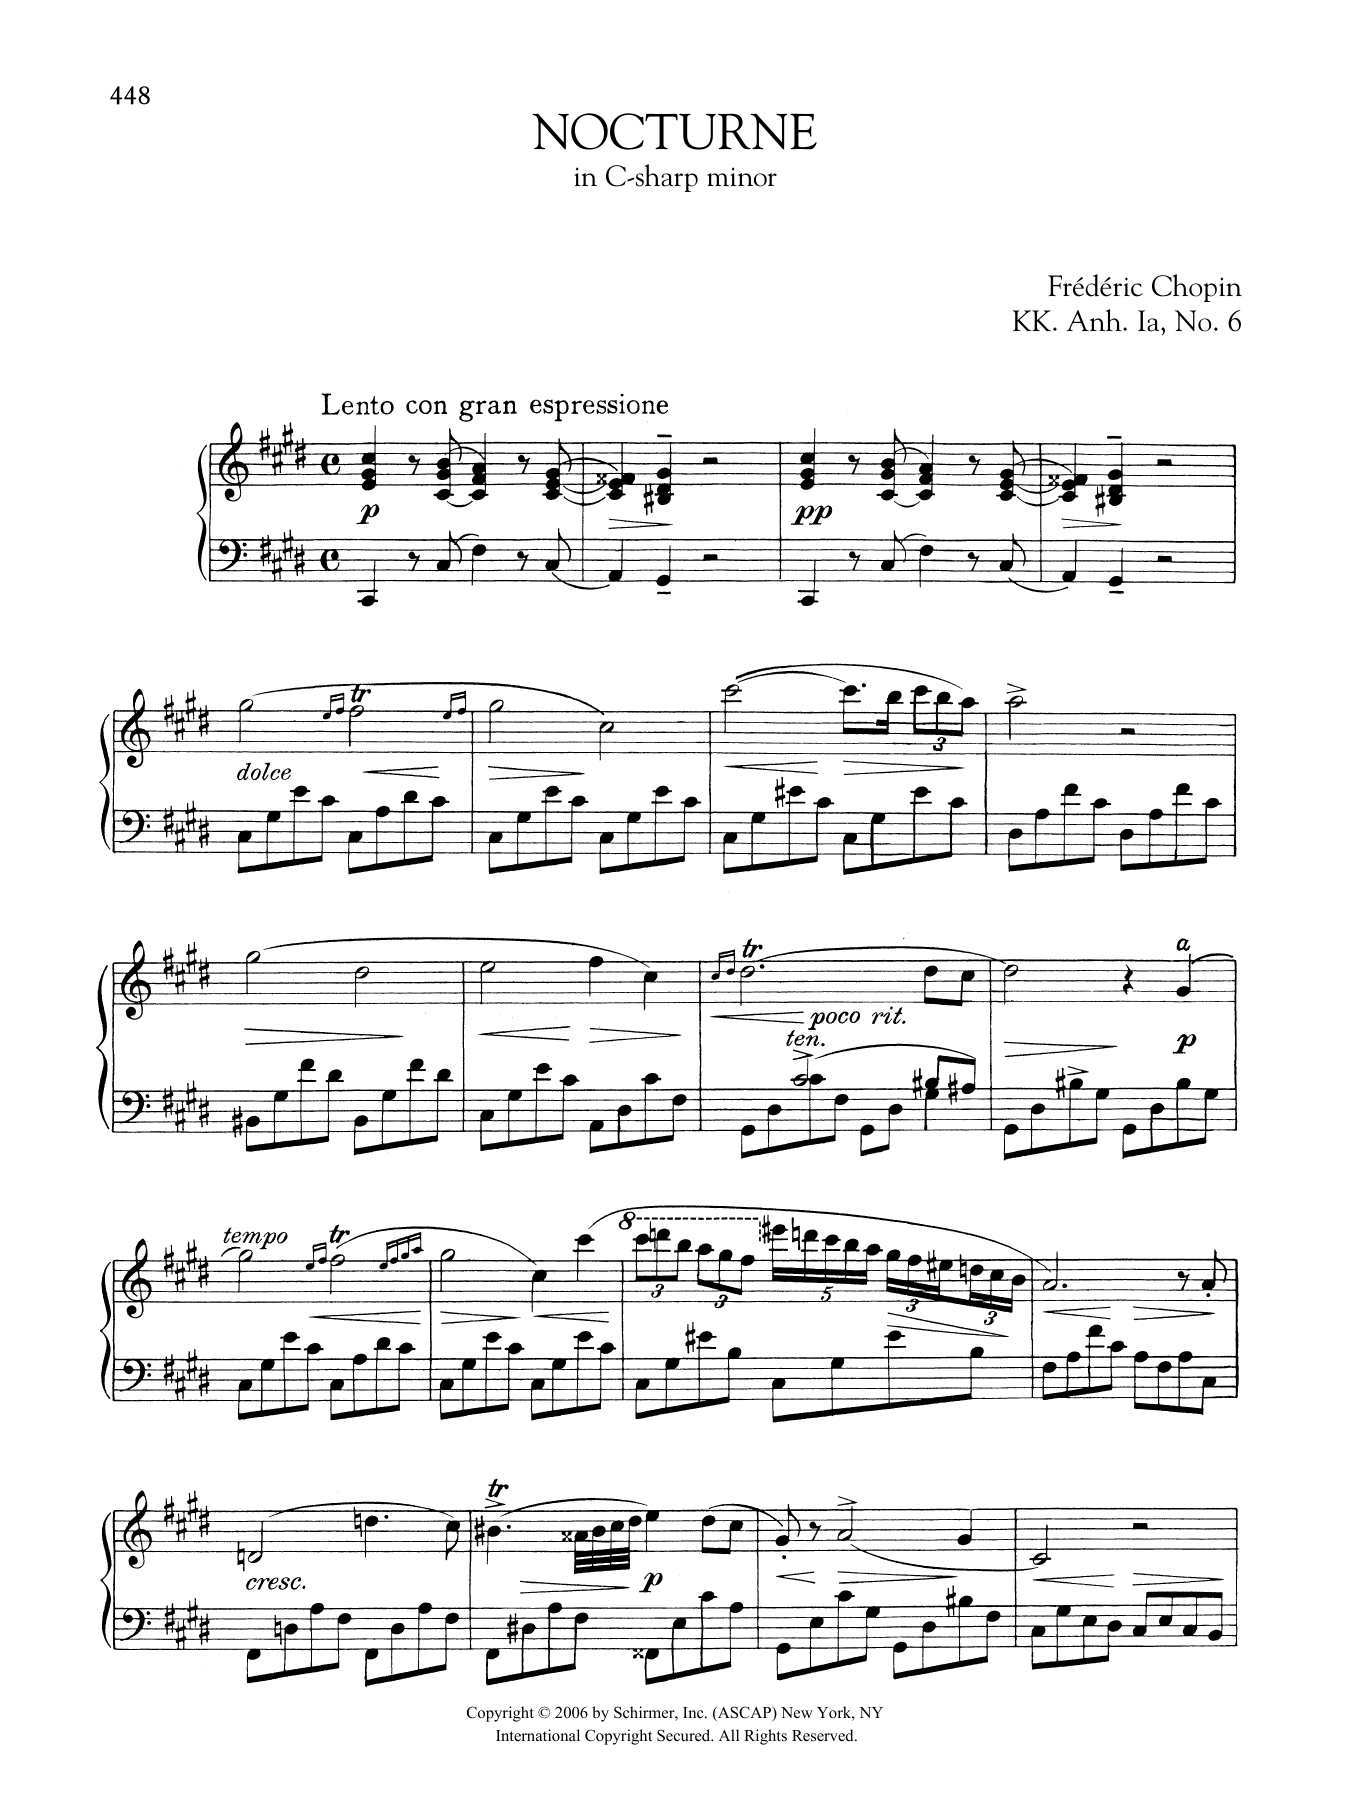 Nocturne in C-sharp minor, KK. Anh. Ia, No. 6 Sheet Music